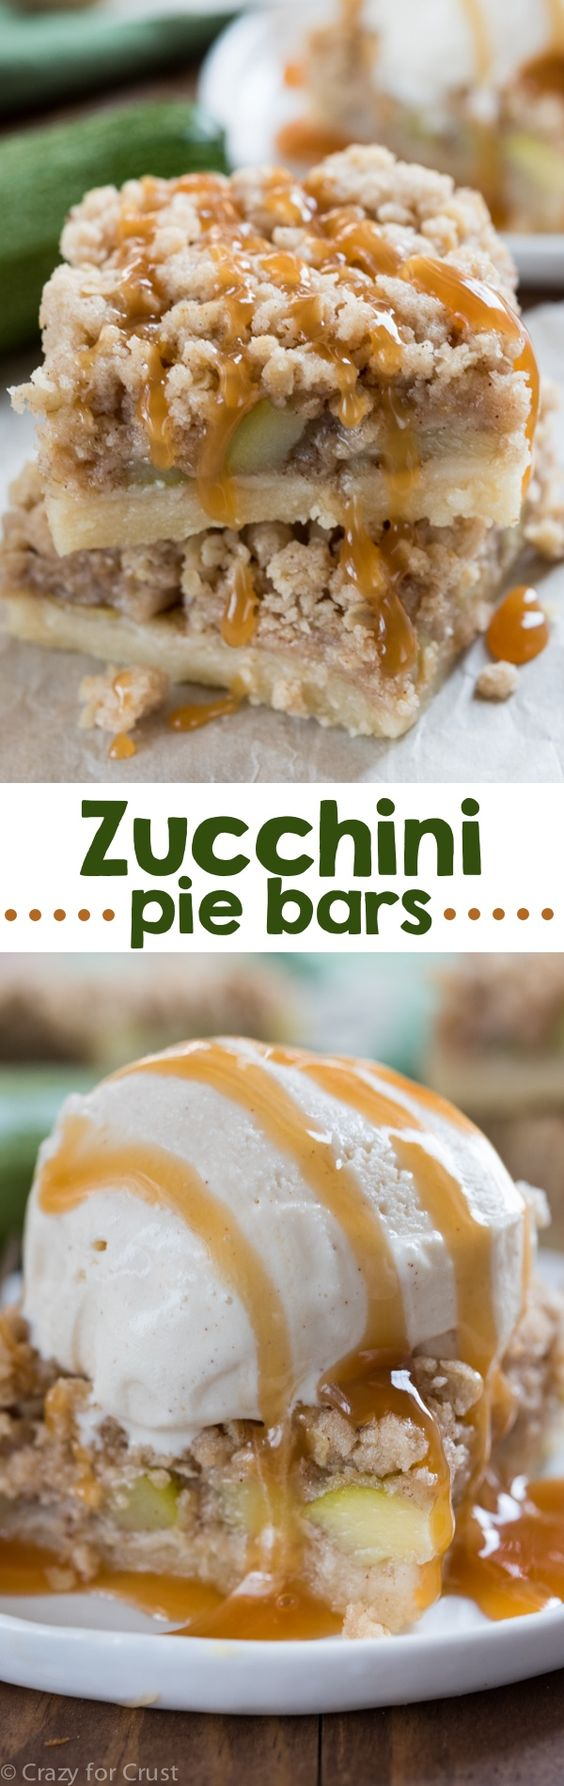 Zucchini Pie Bars - they taste like apple pie! A shortbread crust with a crumble topping, the perfect pie bar recipe!